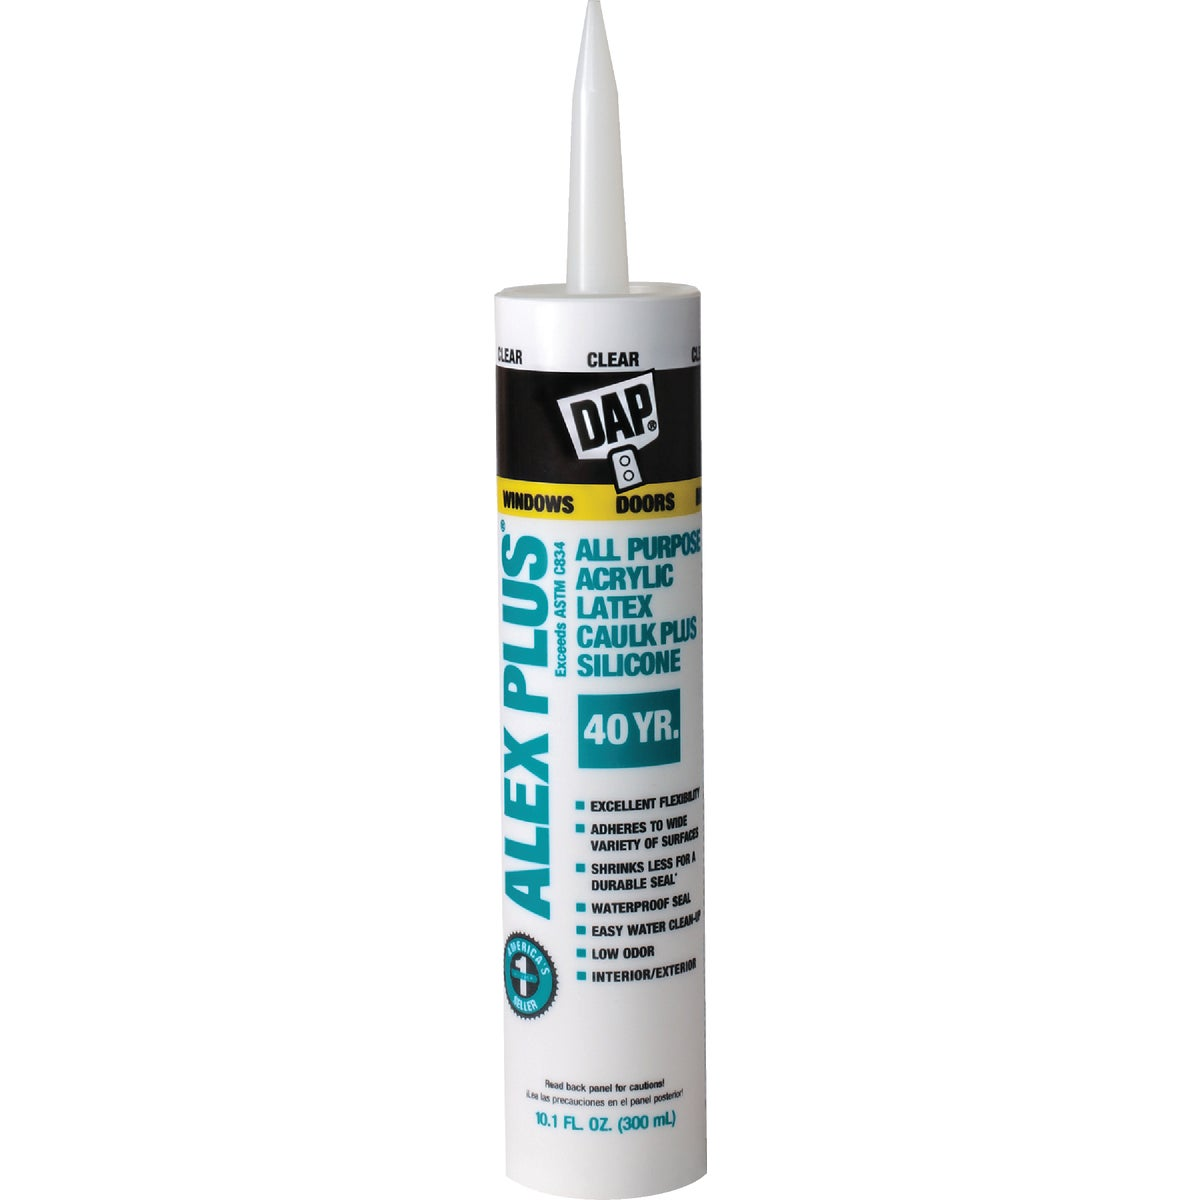 CLEAR ALEX PLUS CAULK - 18156 by Dap Inc